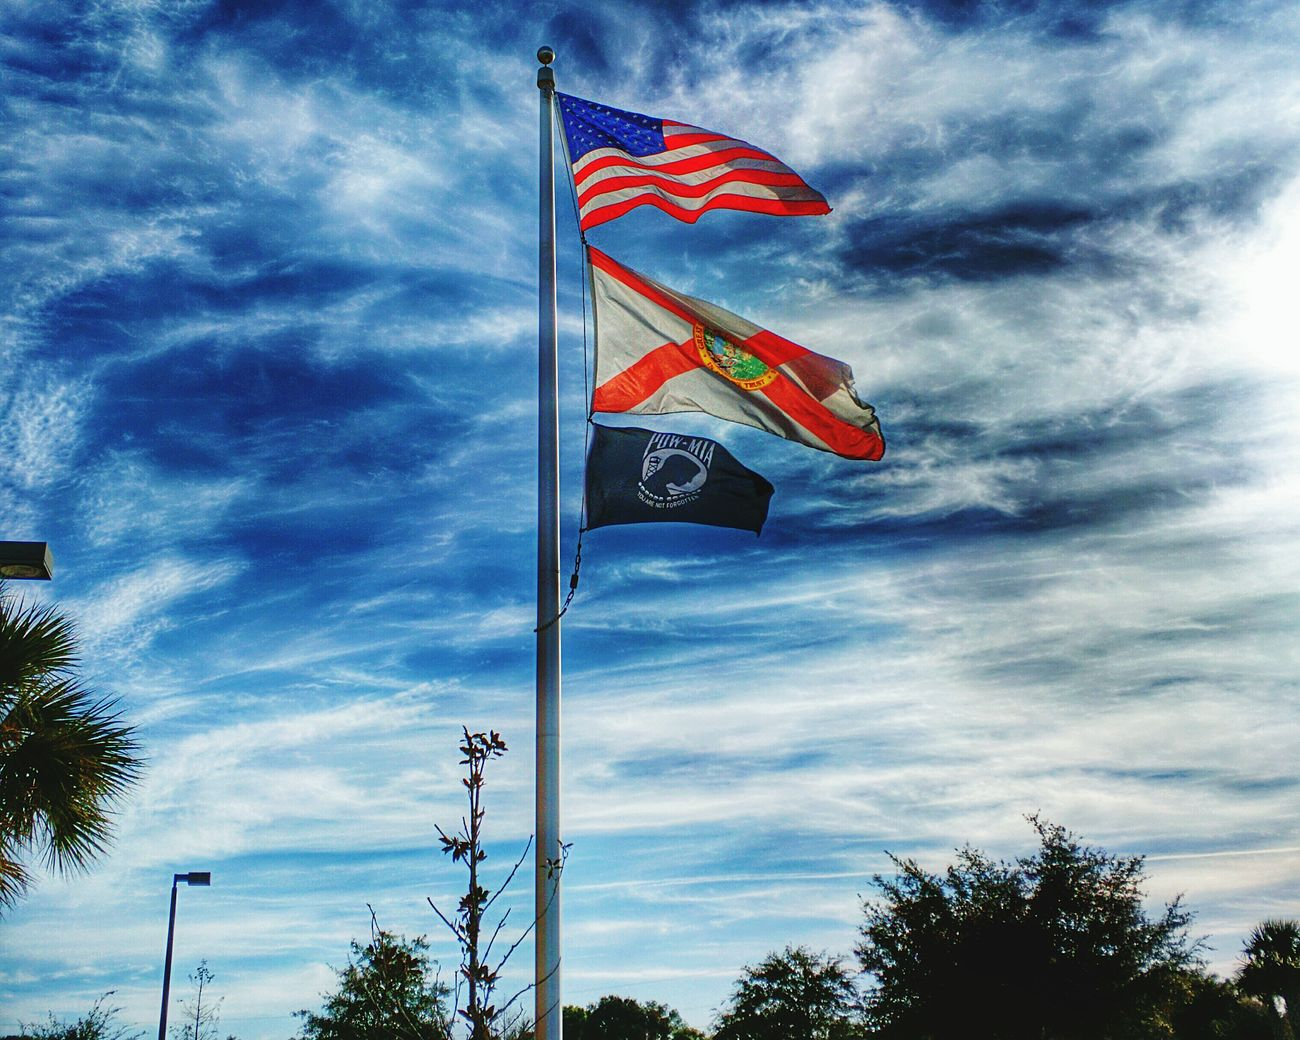 AndroidPhotography Moto New Found Beauty .. Nexus6 Cam :) Nexus6 HDR Hdr Edit American Flag Florida Powmia